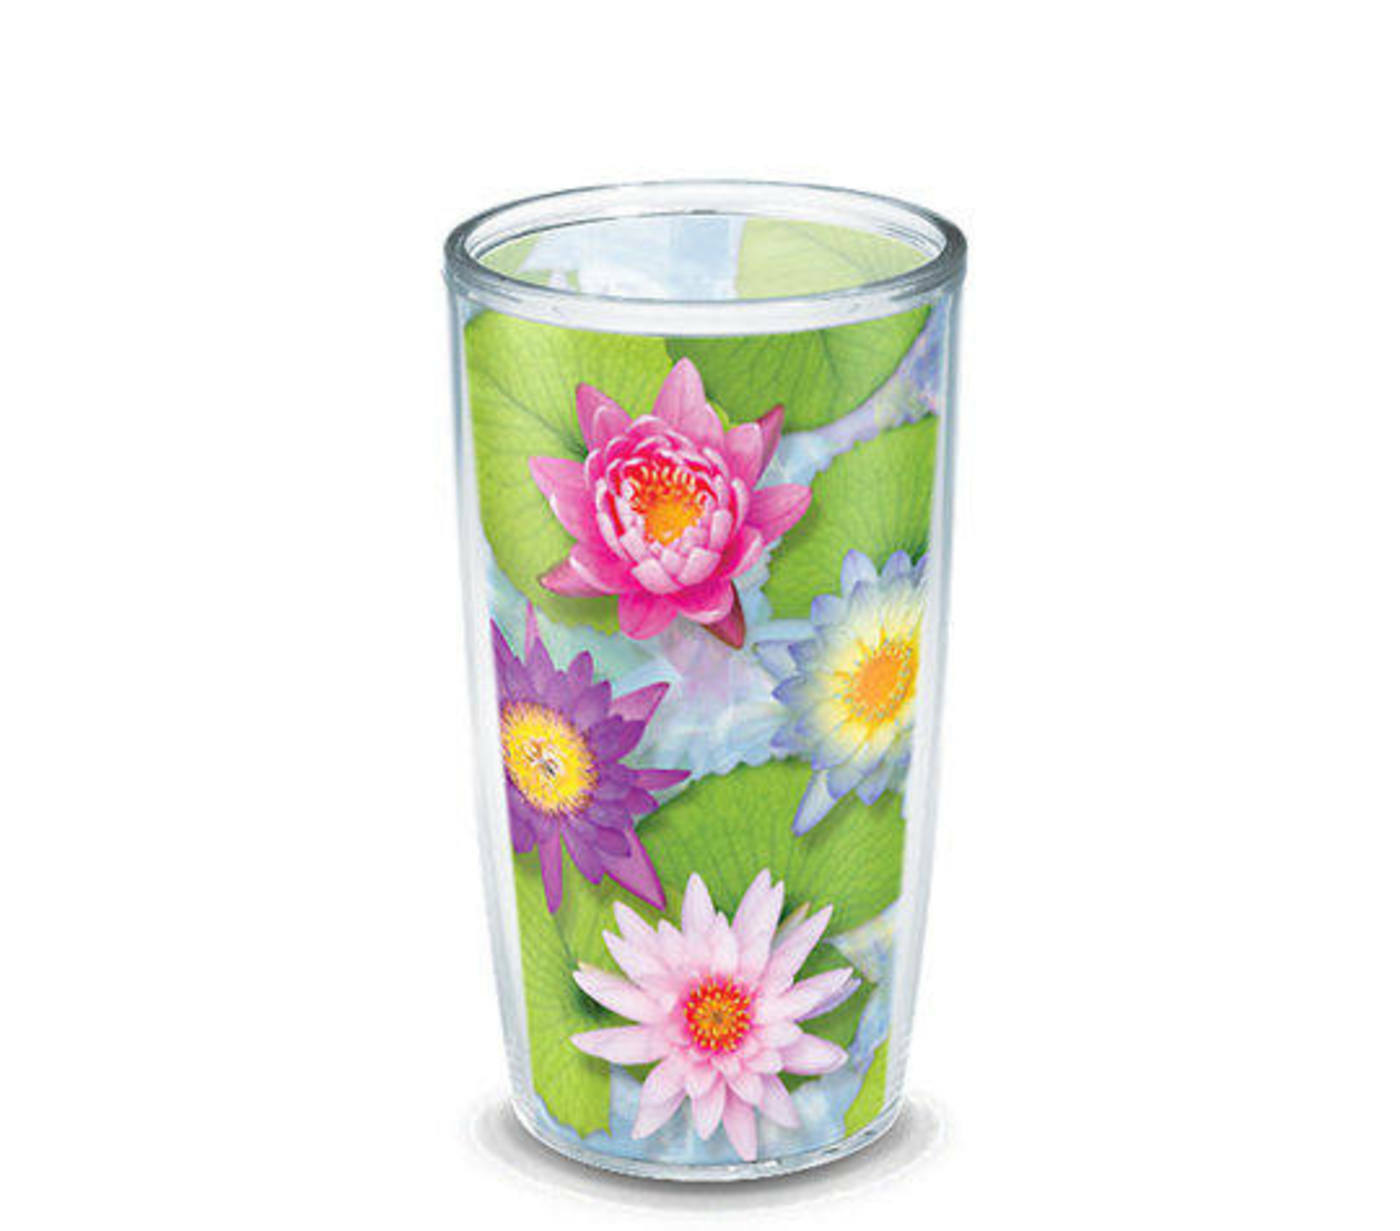 Tervis Tumbler Glass 16 Oz Floating Flowers Water Lily Pad Lotus